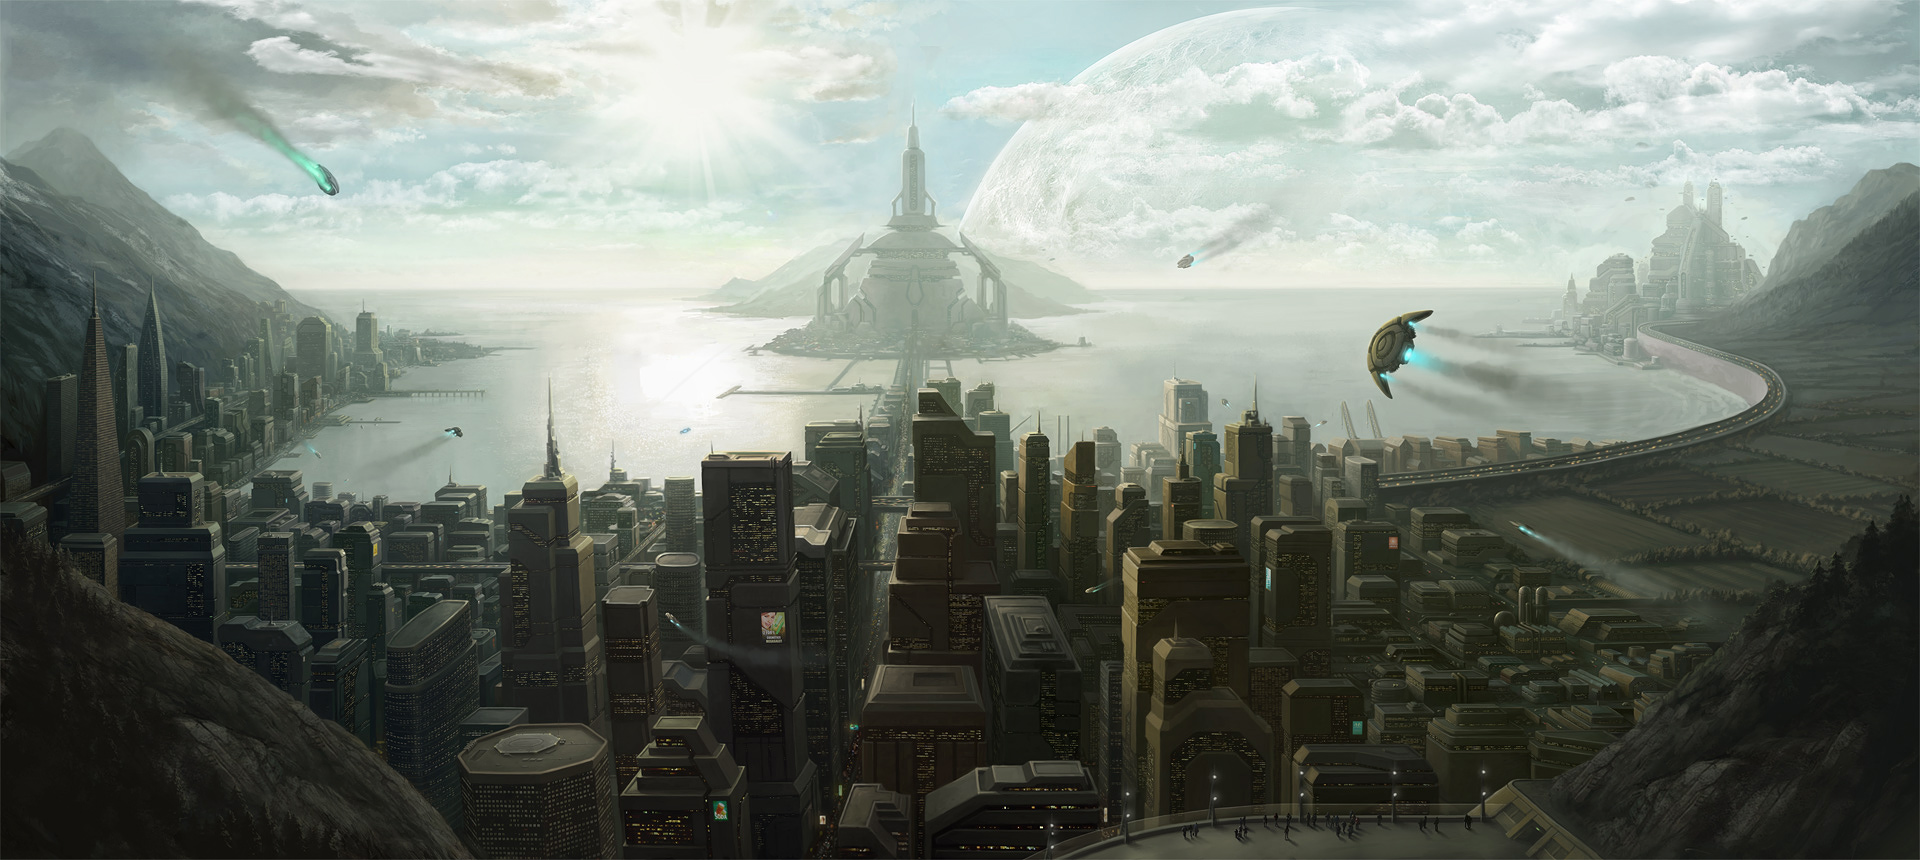 Sci fi City Illustration